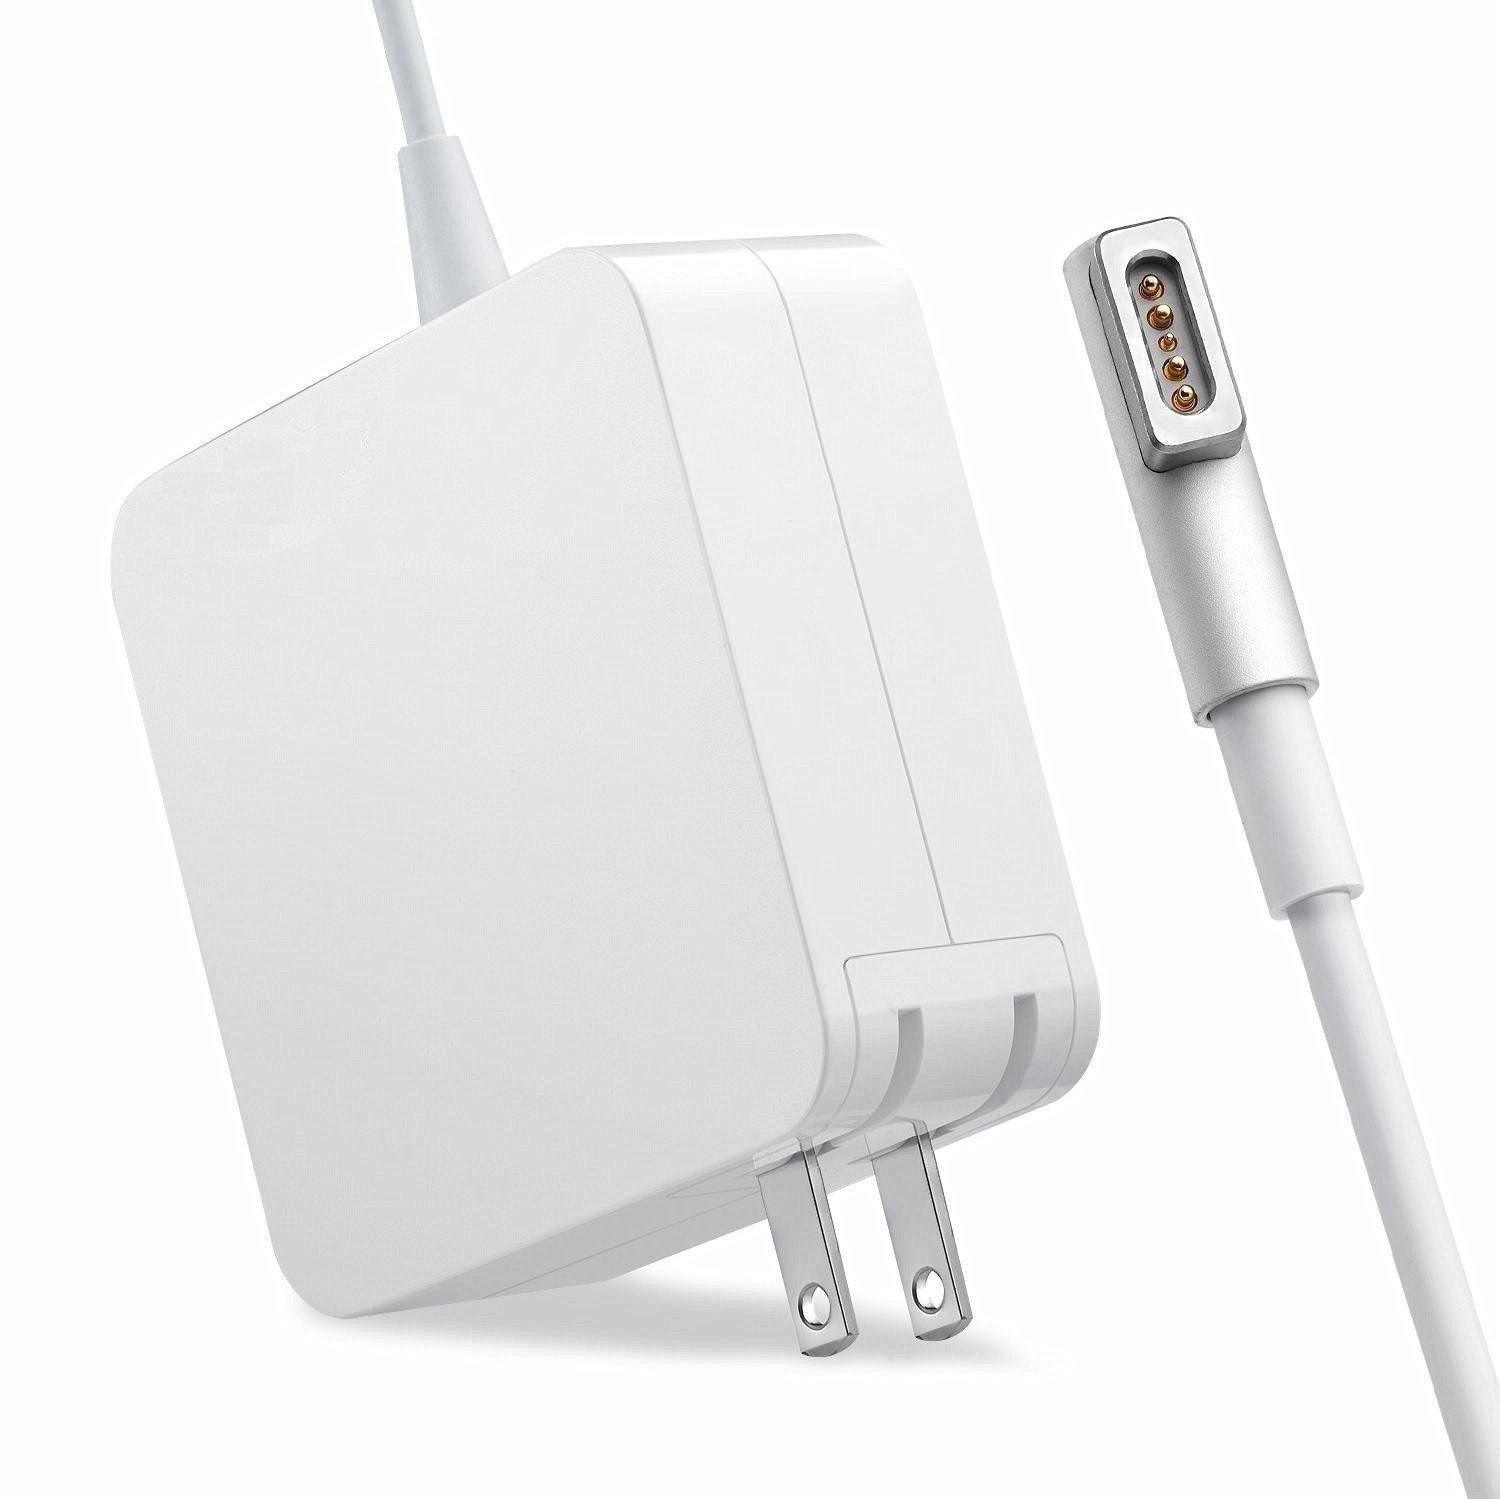 Sngg Mac Book Air Charger, Replacement 45W Magsafe 1 Magnetic L-Tip Power Adapter Charger,Compatible MacBook 11-inch & 13 inch(Before Mid2012)